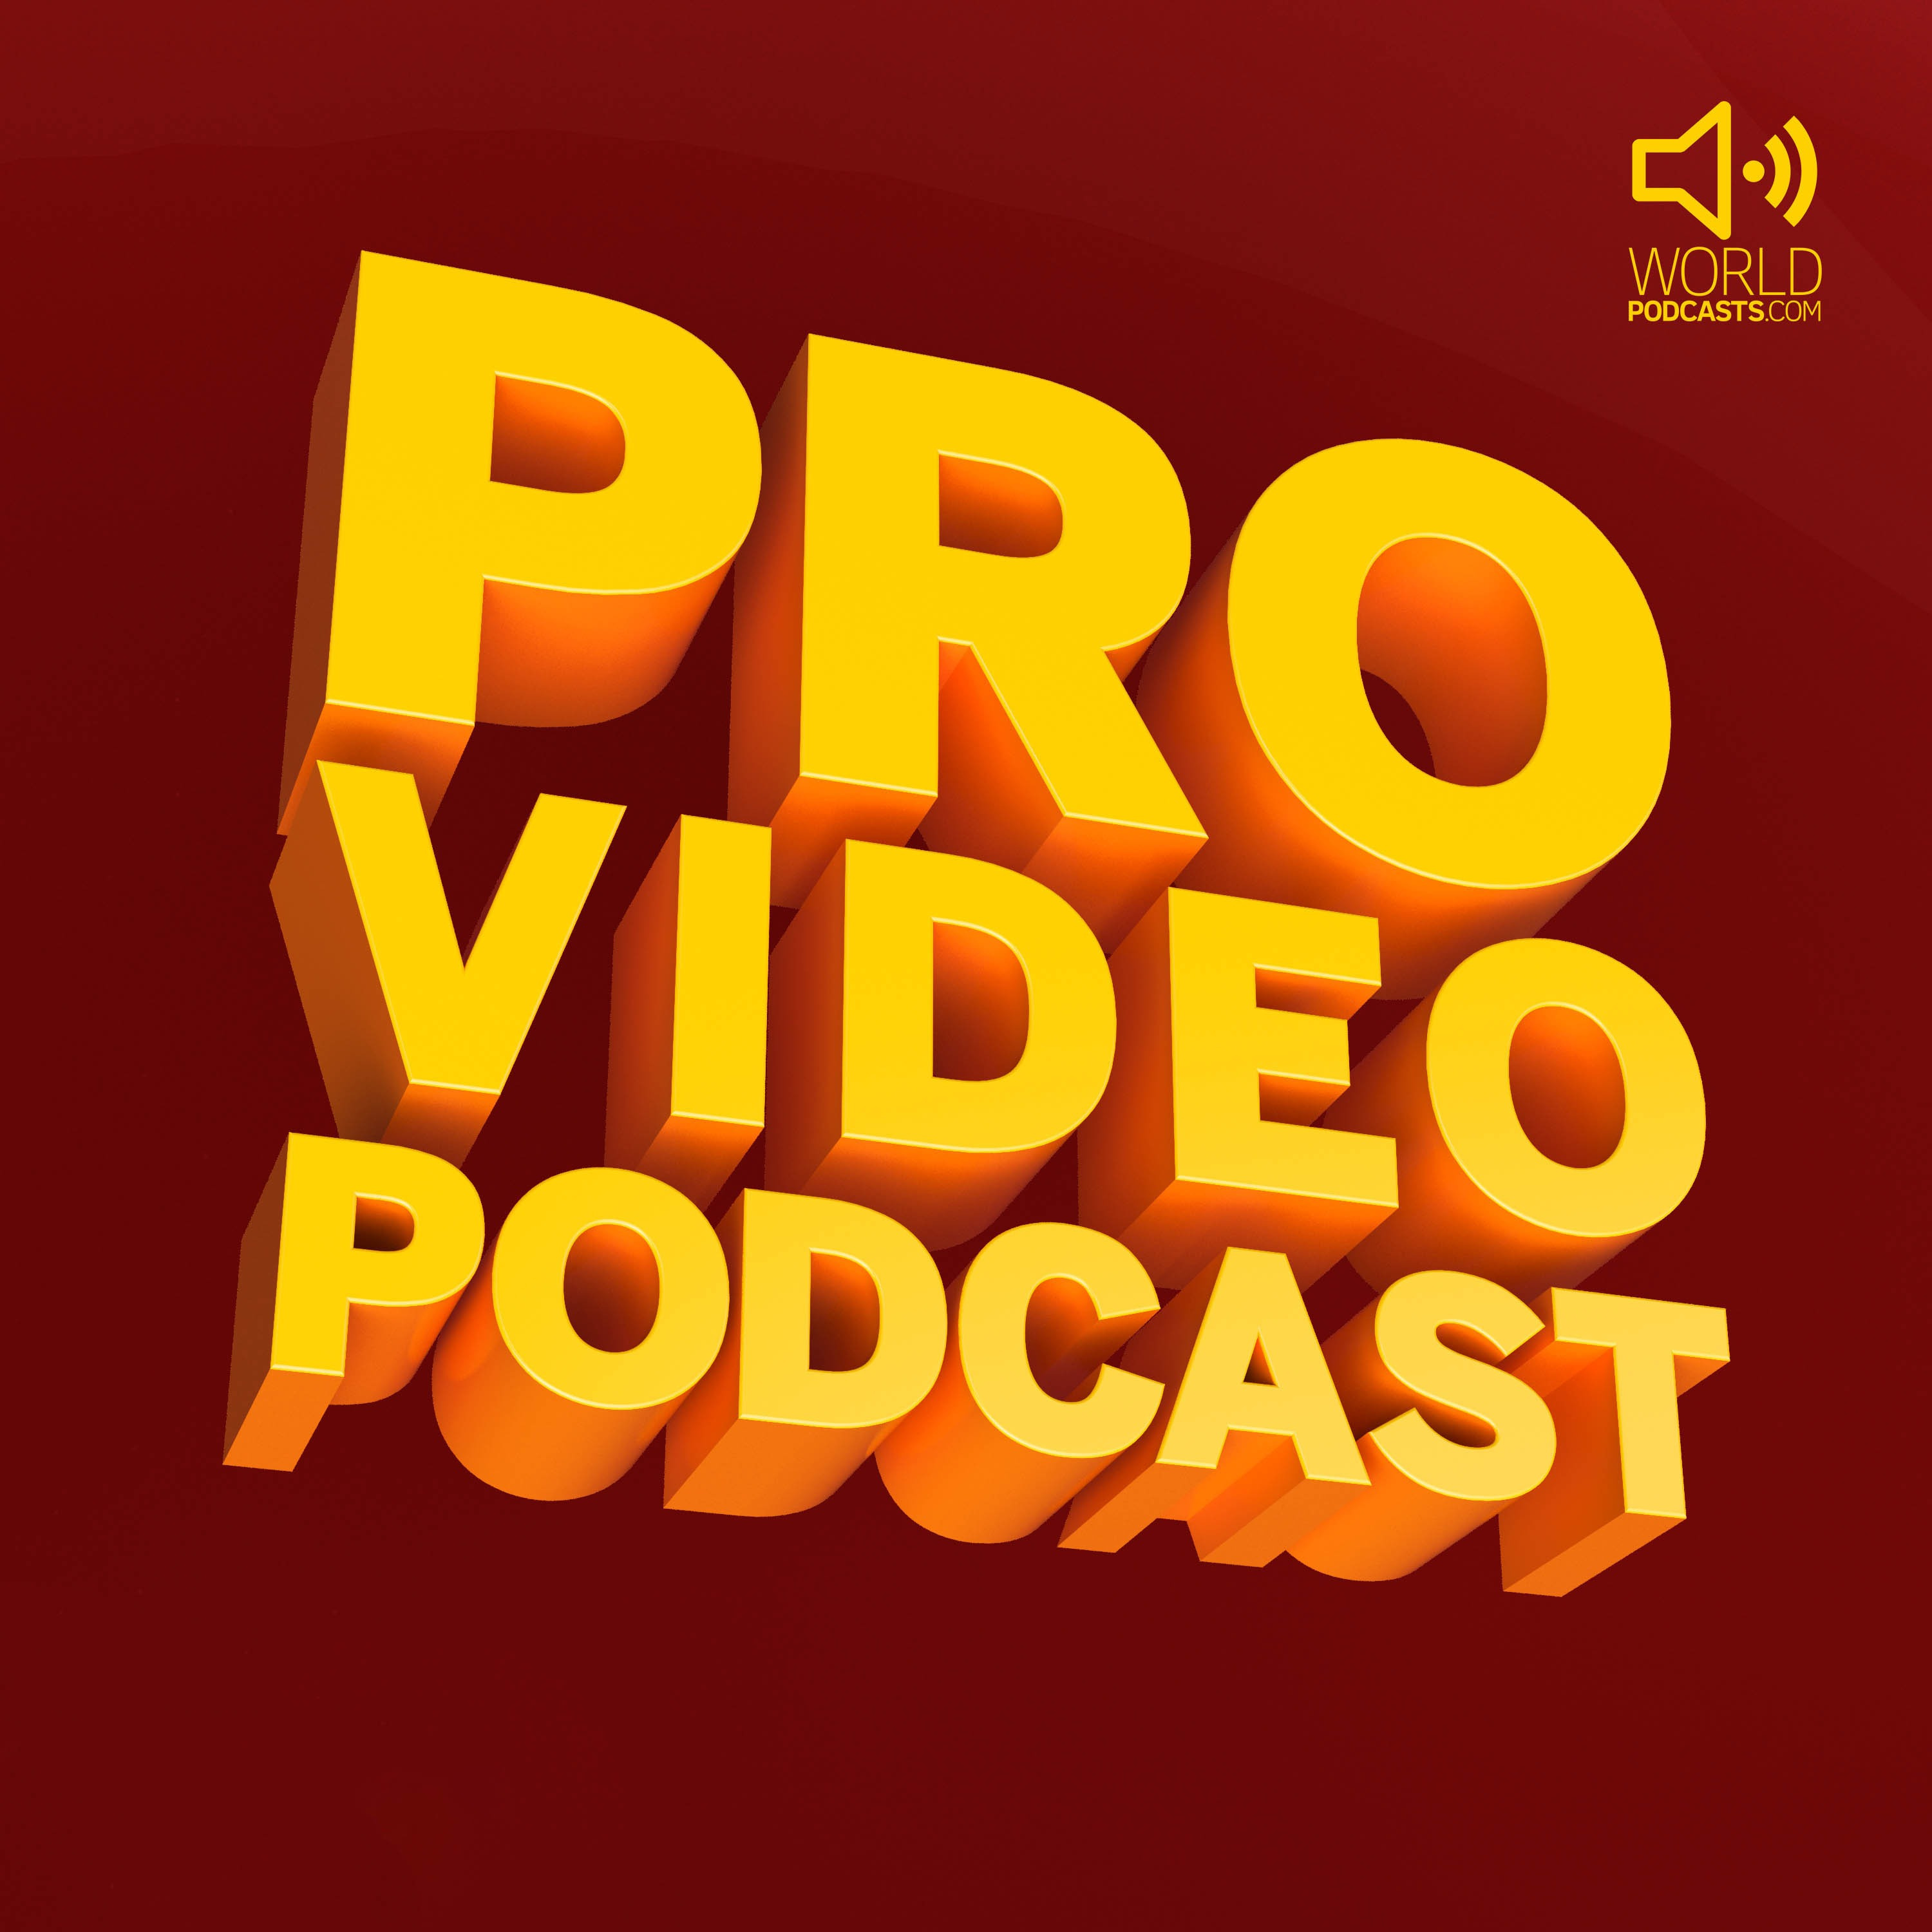 Pro Video Podcast